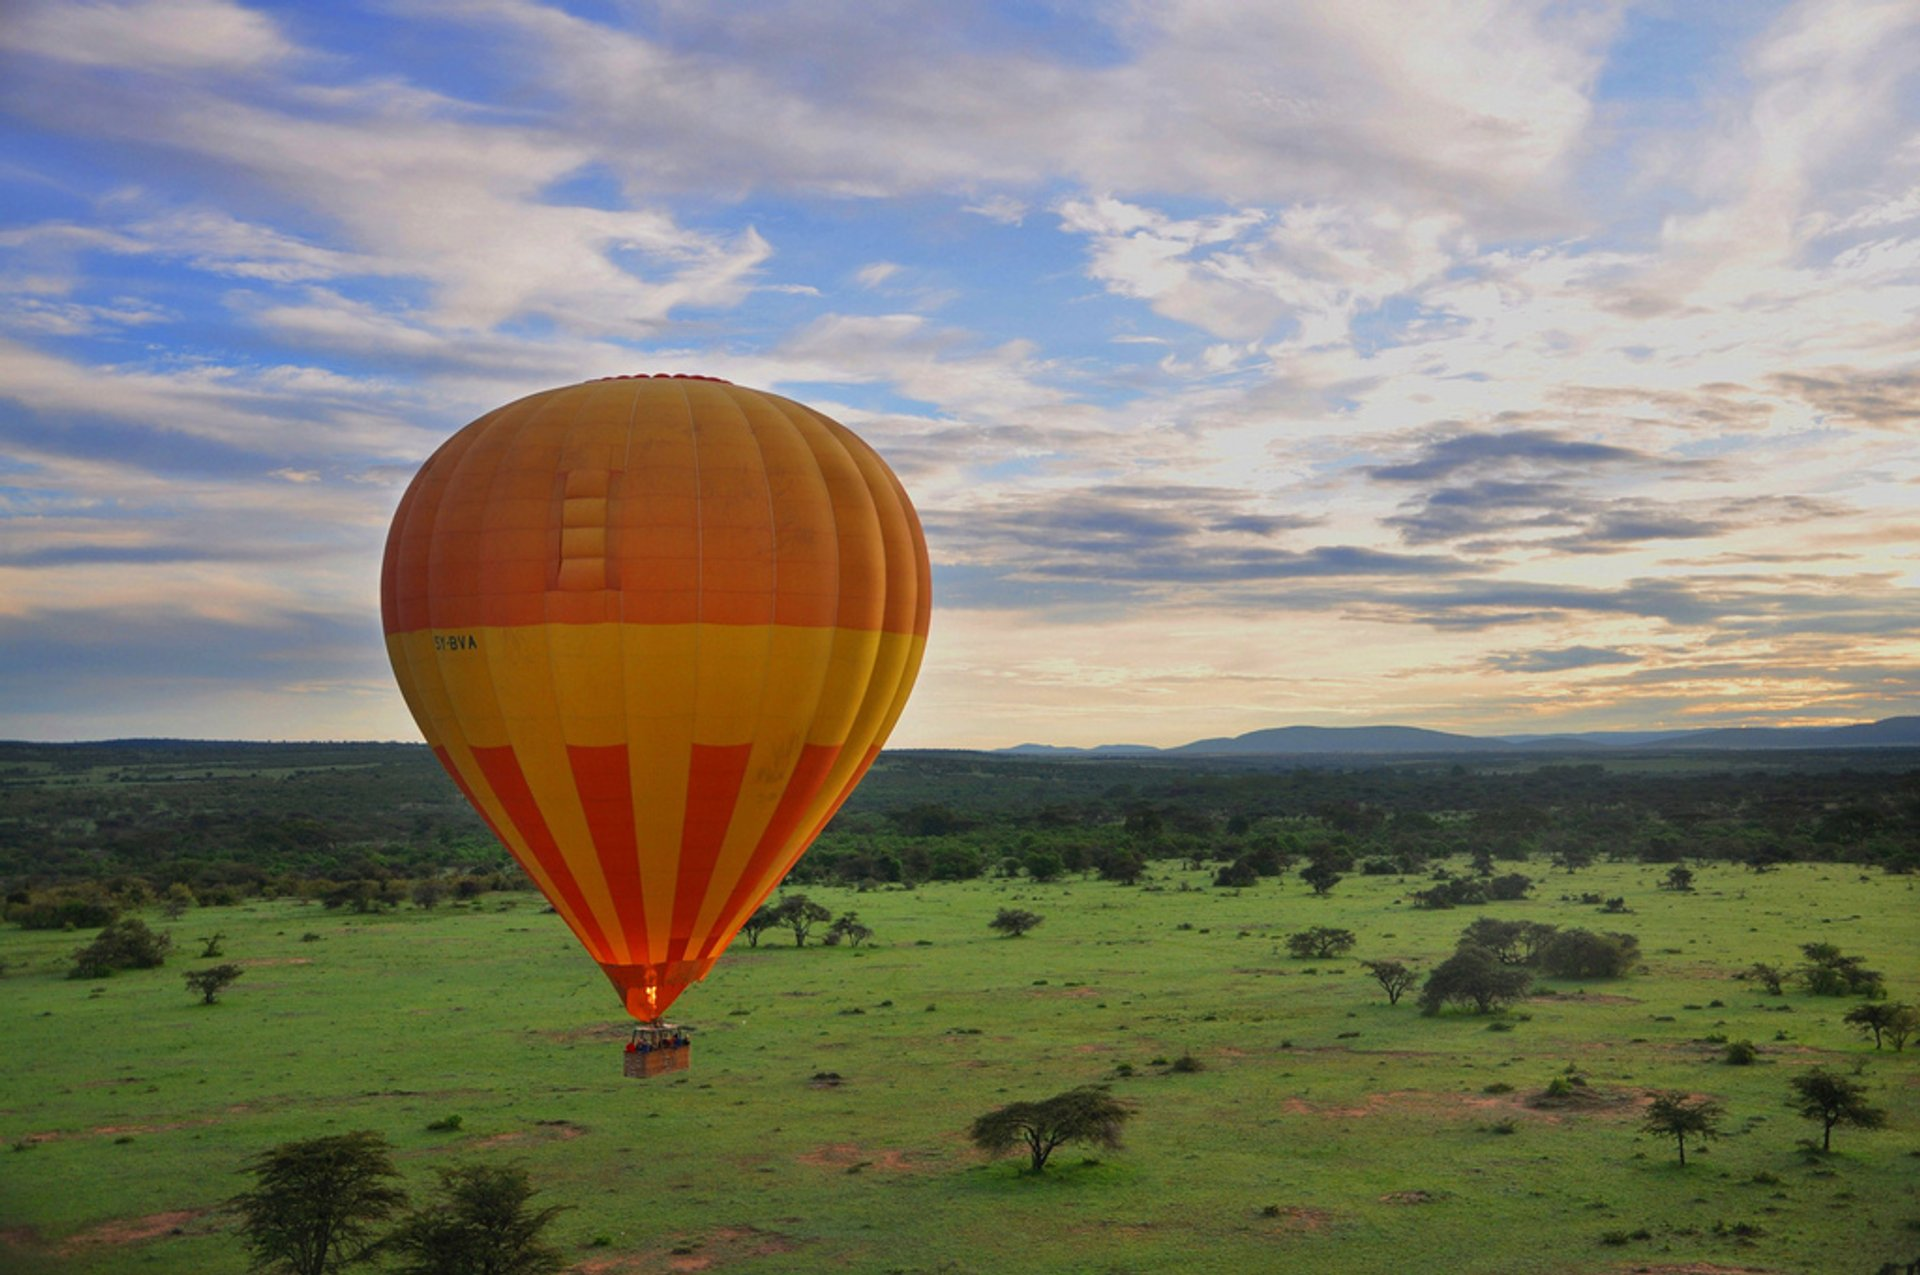 Balloon Trips in Kenya 2020 - Best Time